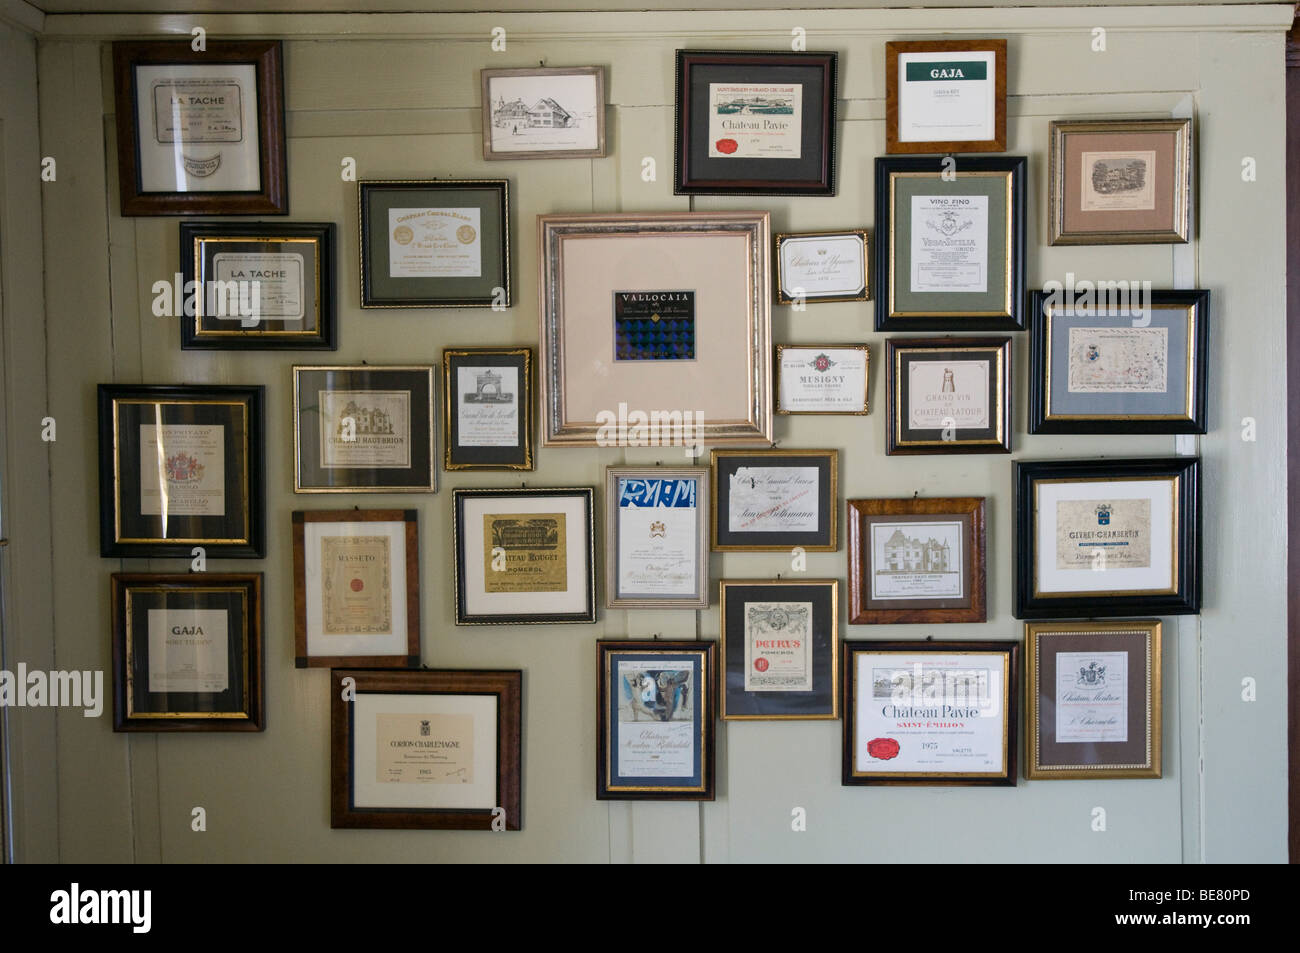 Decoration, photo frames with wine labels hung on the wall, Restaurant Taverne Zum Schaefli, Owner and head chef - Stock Image